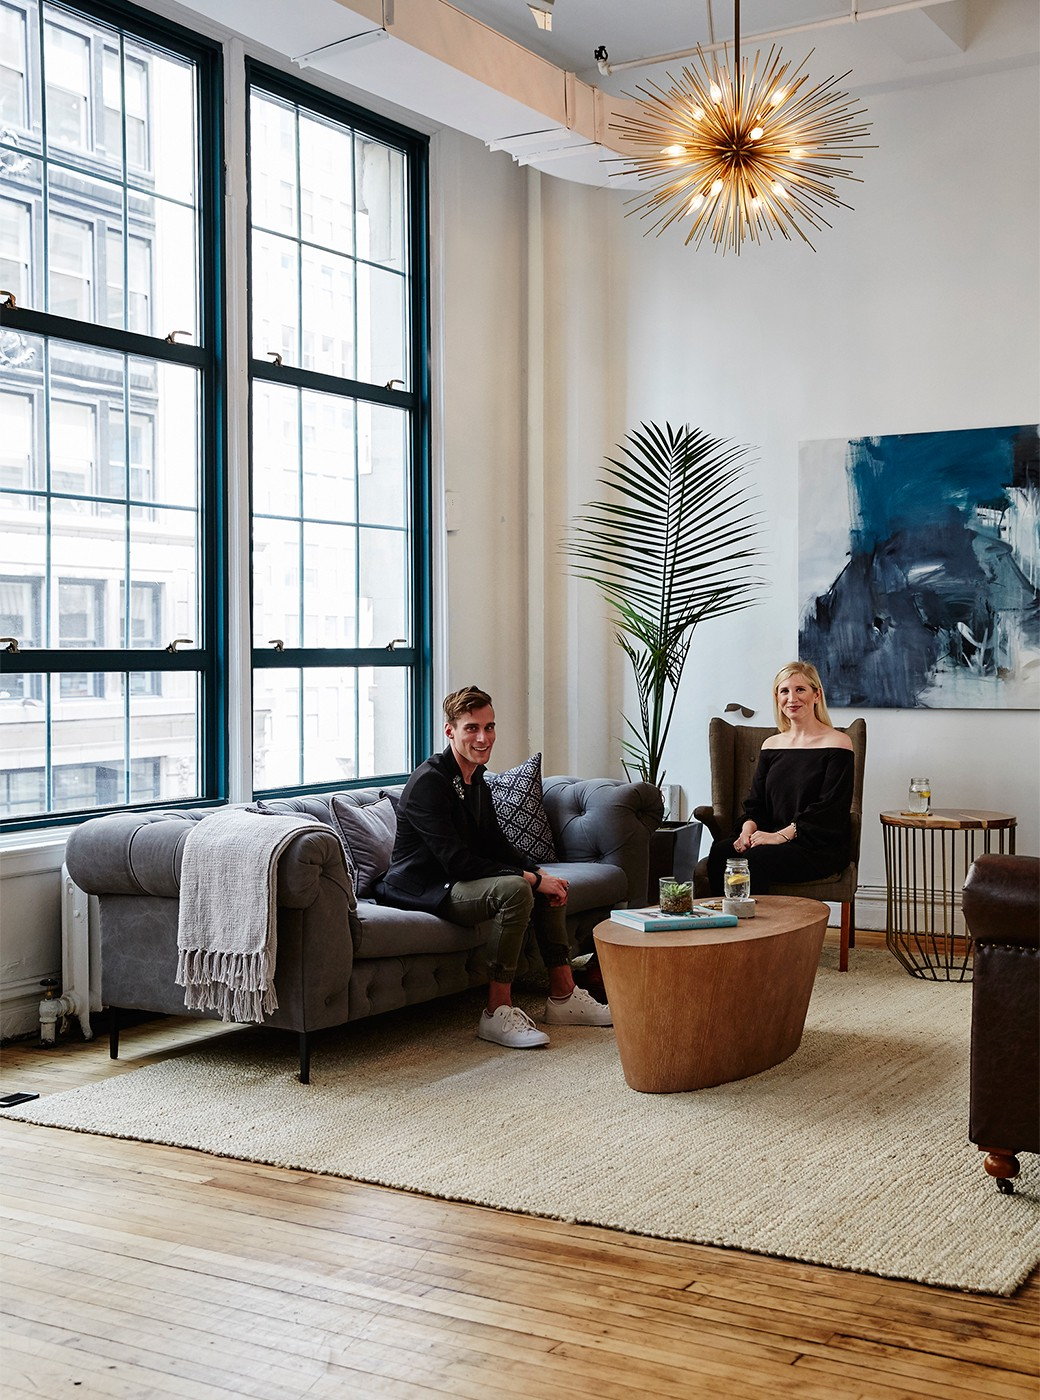 the digital firm that's disrupting interior design – compass